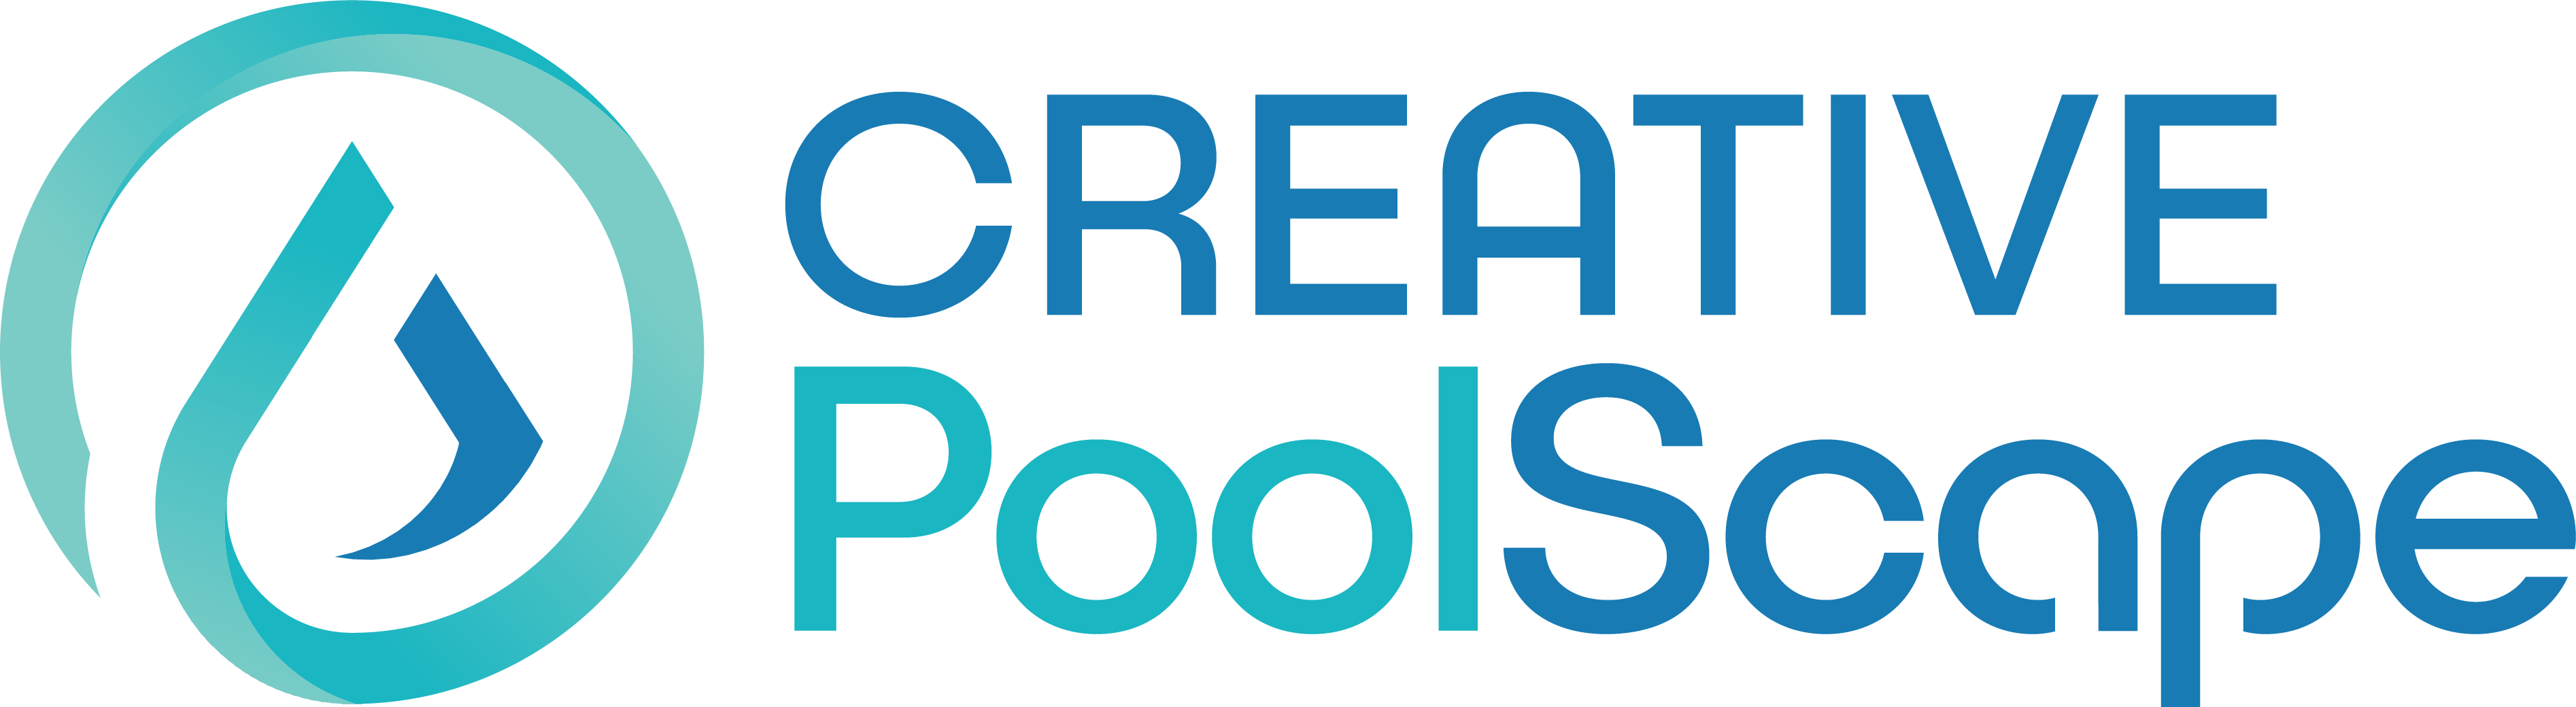 Creative Poolscape logo